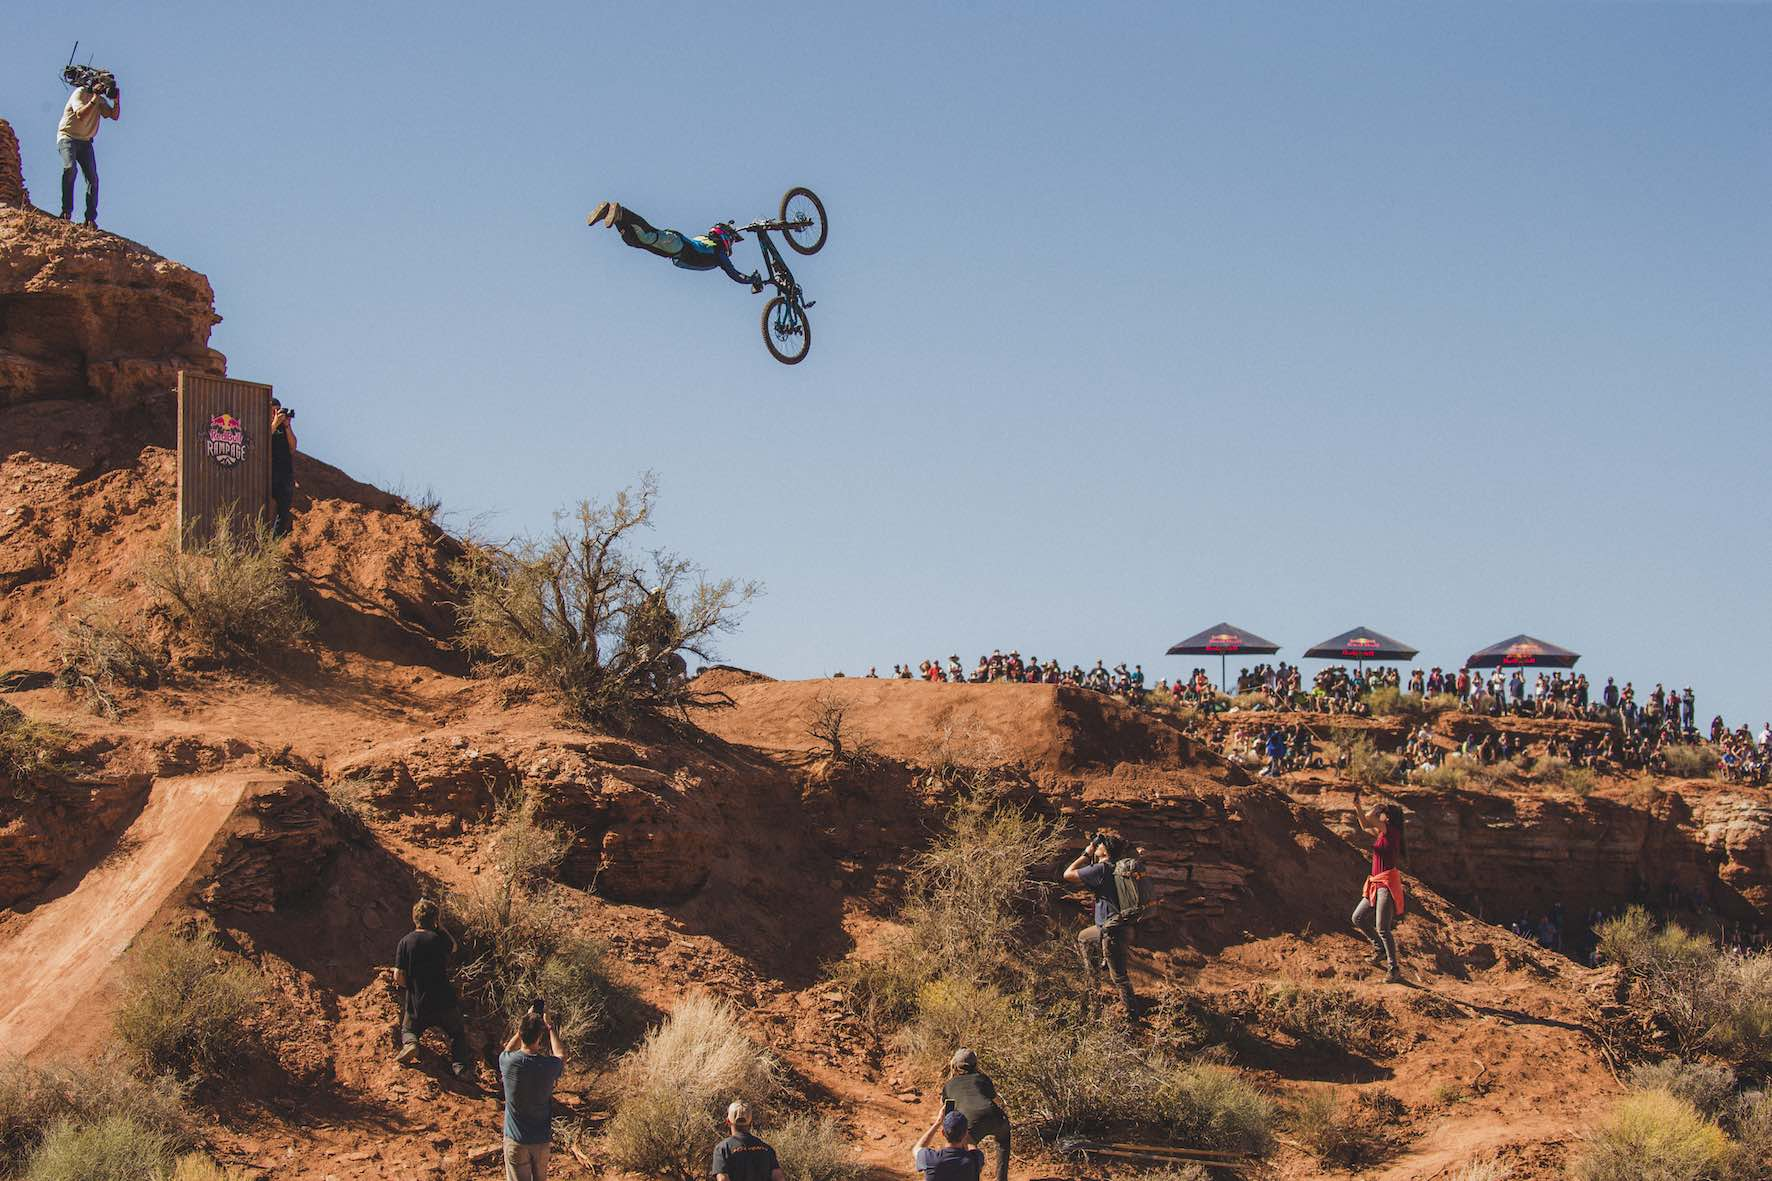 Adolf Silva winning the People's Choice award at Red Bull Rampage 2018